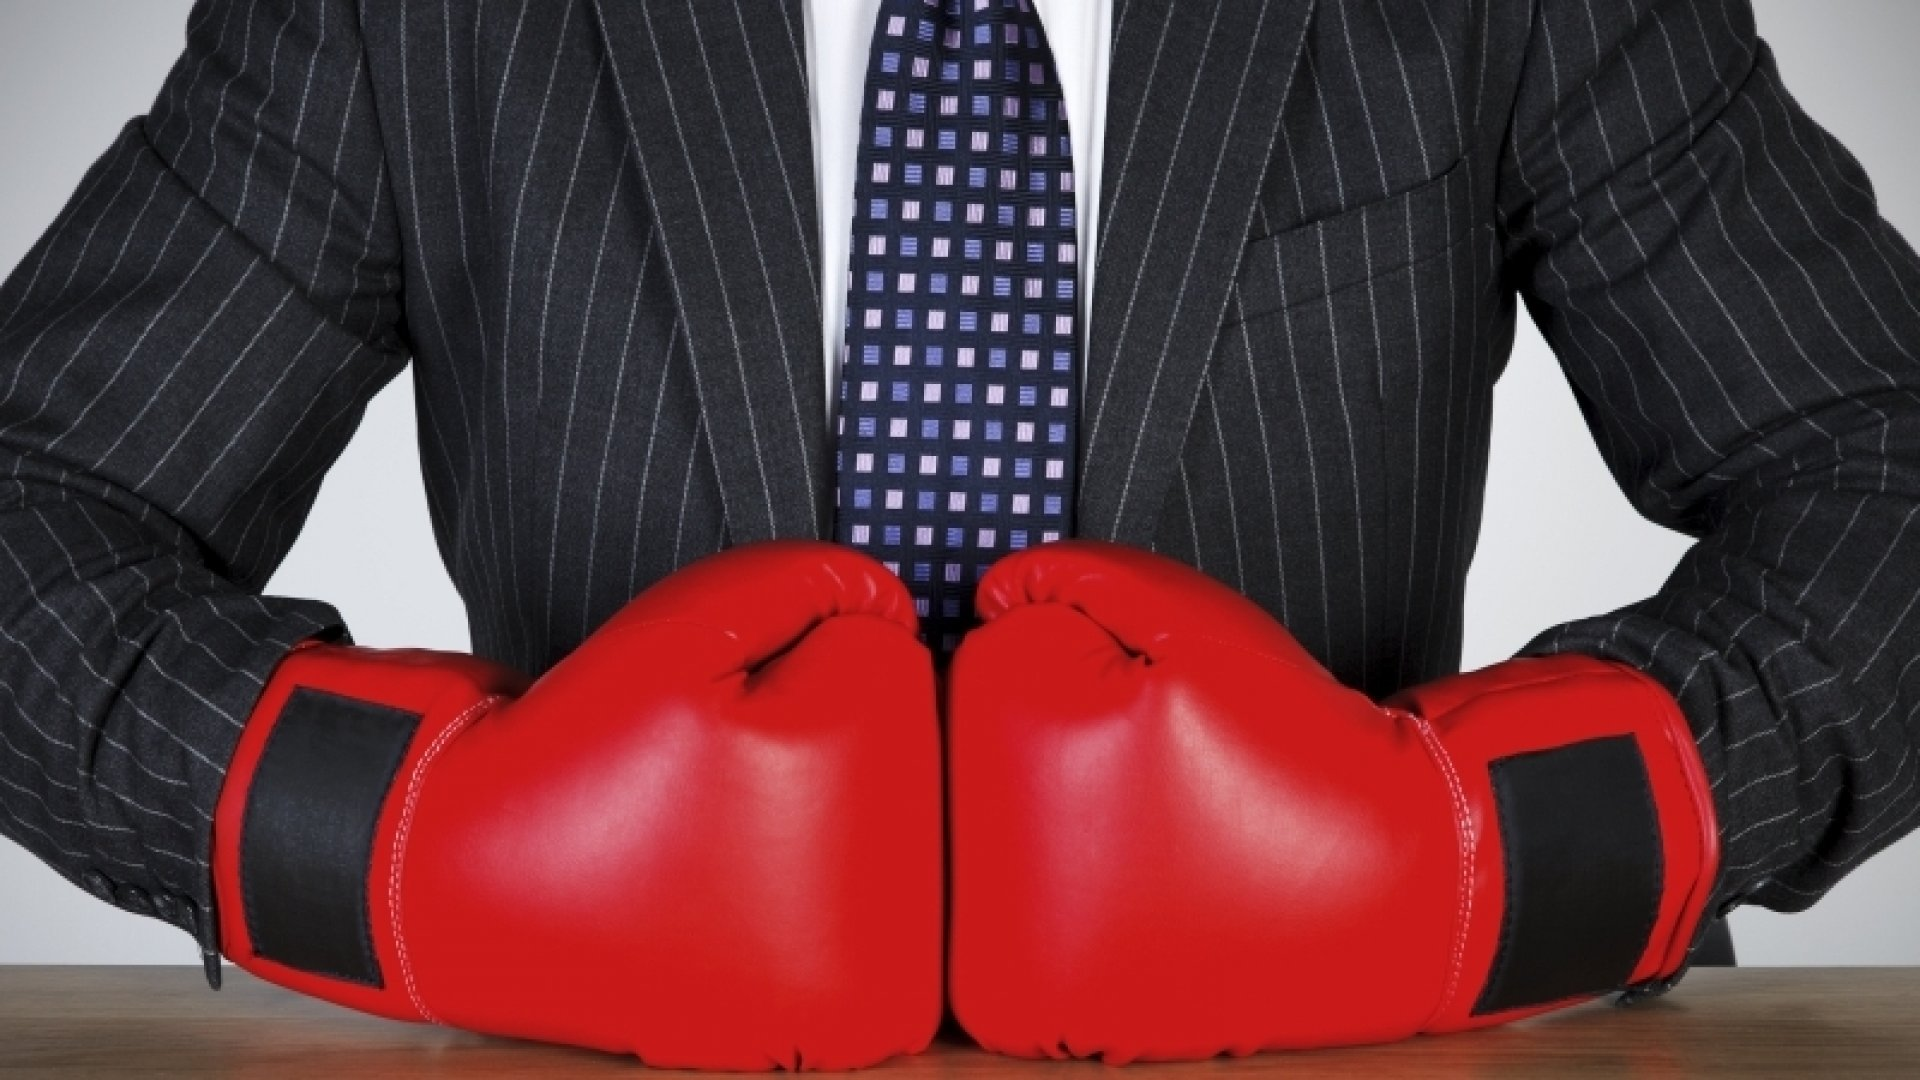 3 Lessons from the 'Get In The Ring' Startup Competition